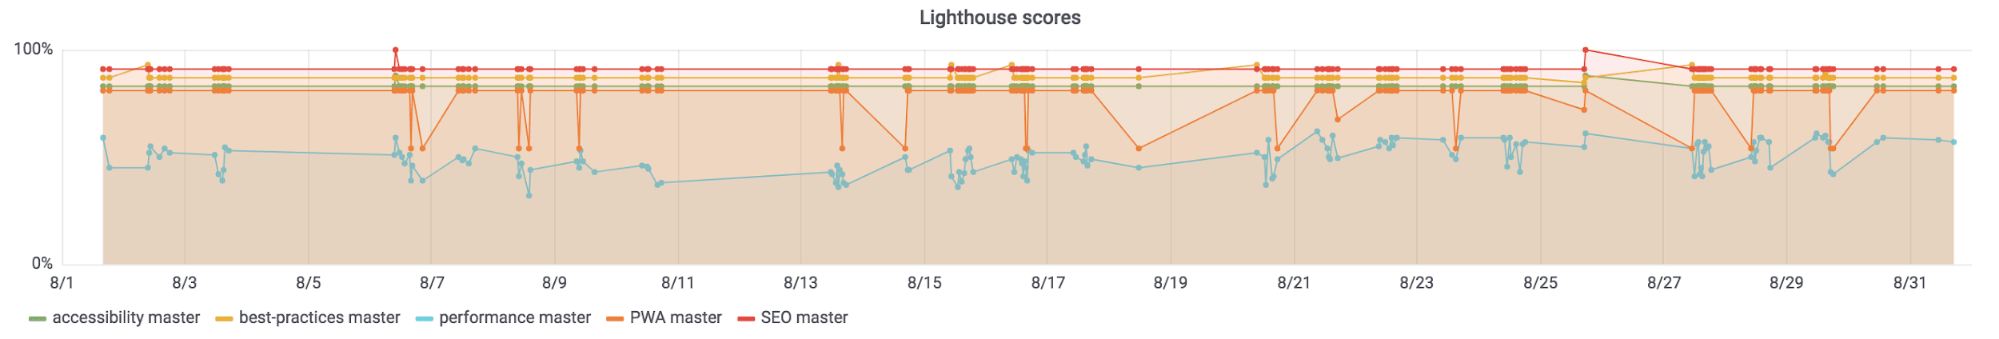 Graph showing Lighthouse metrics over time